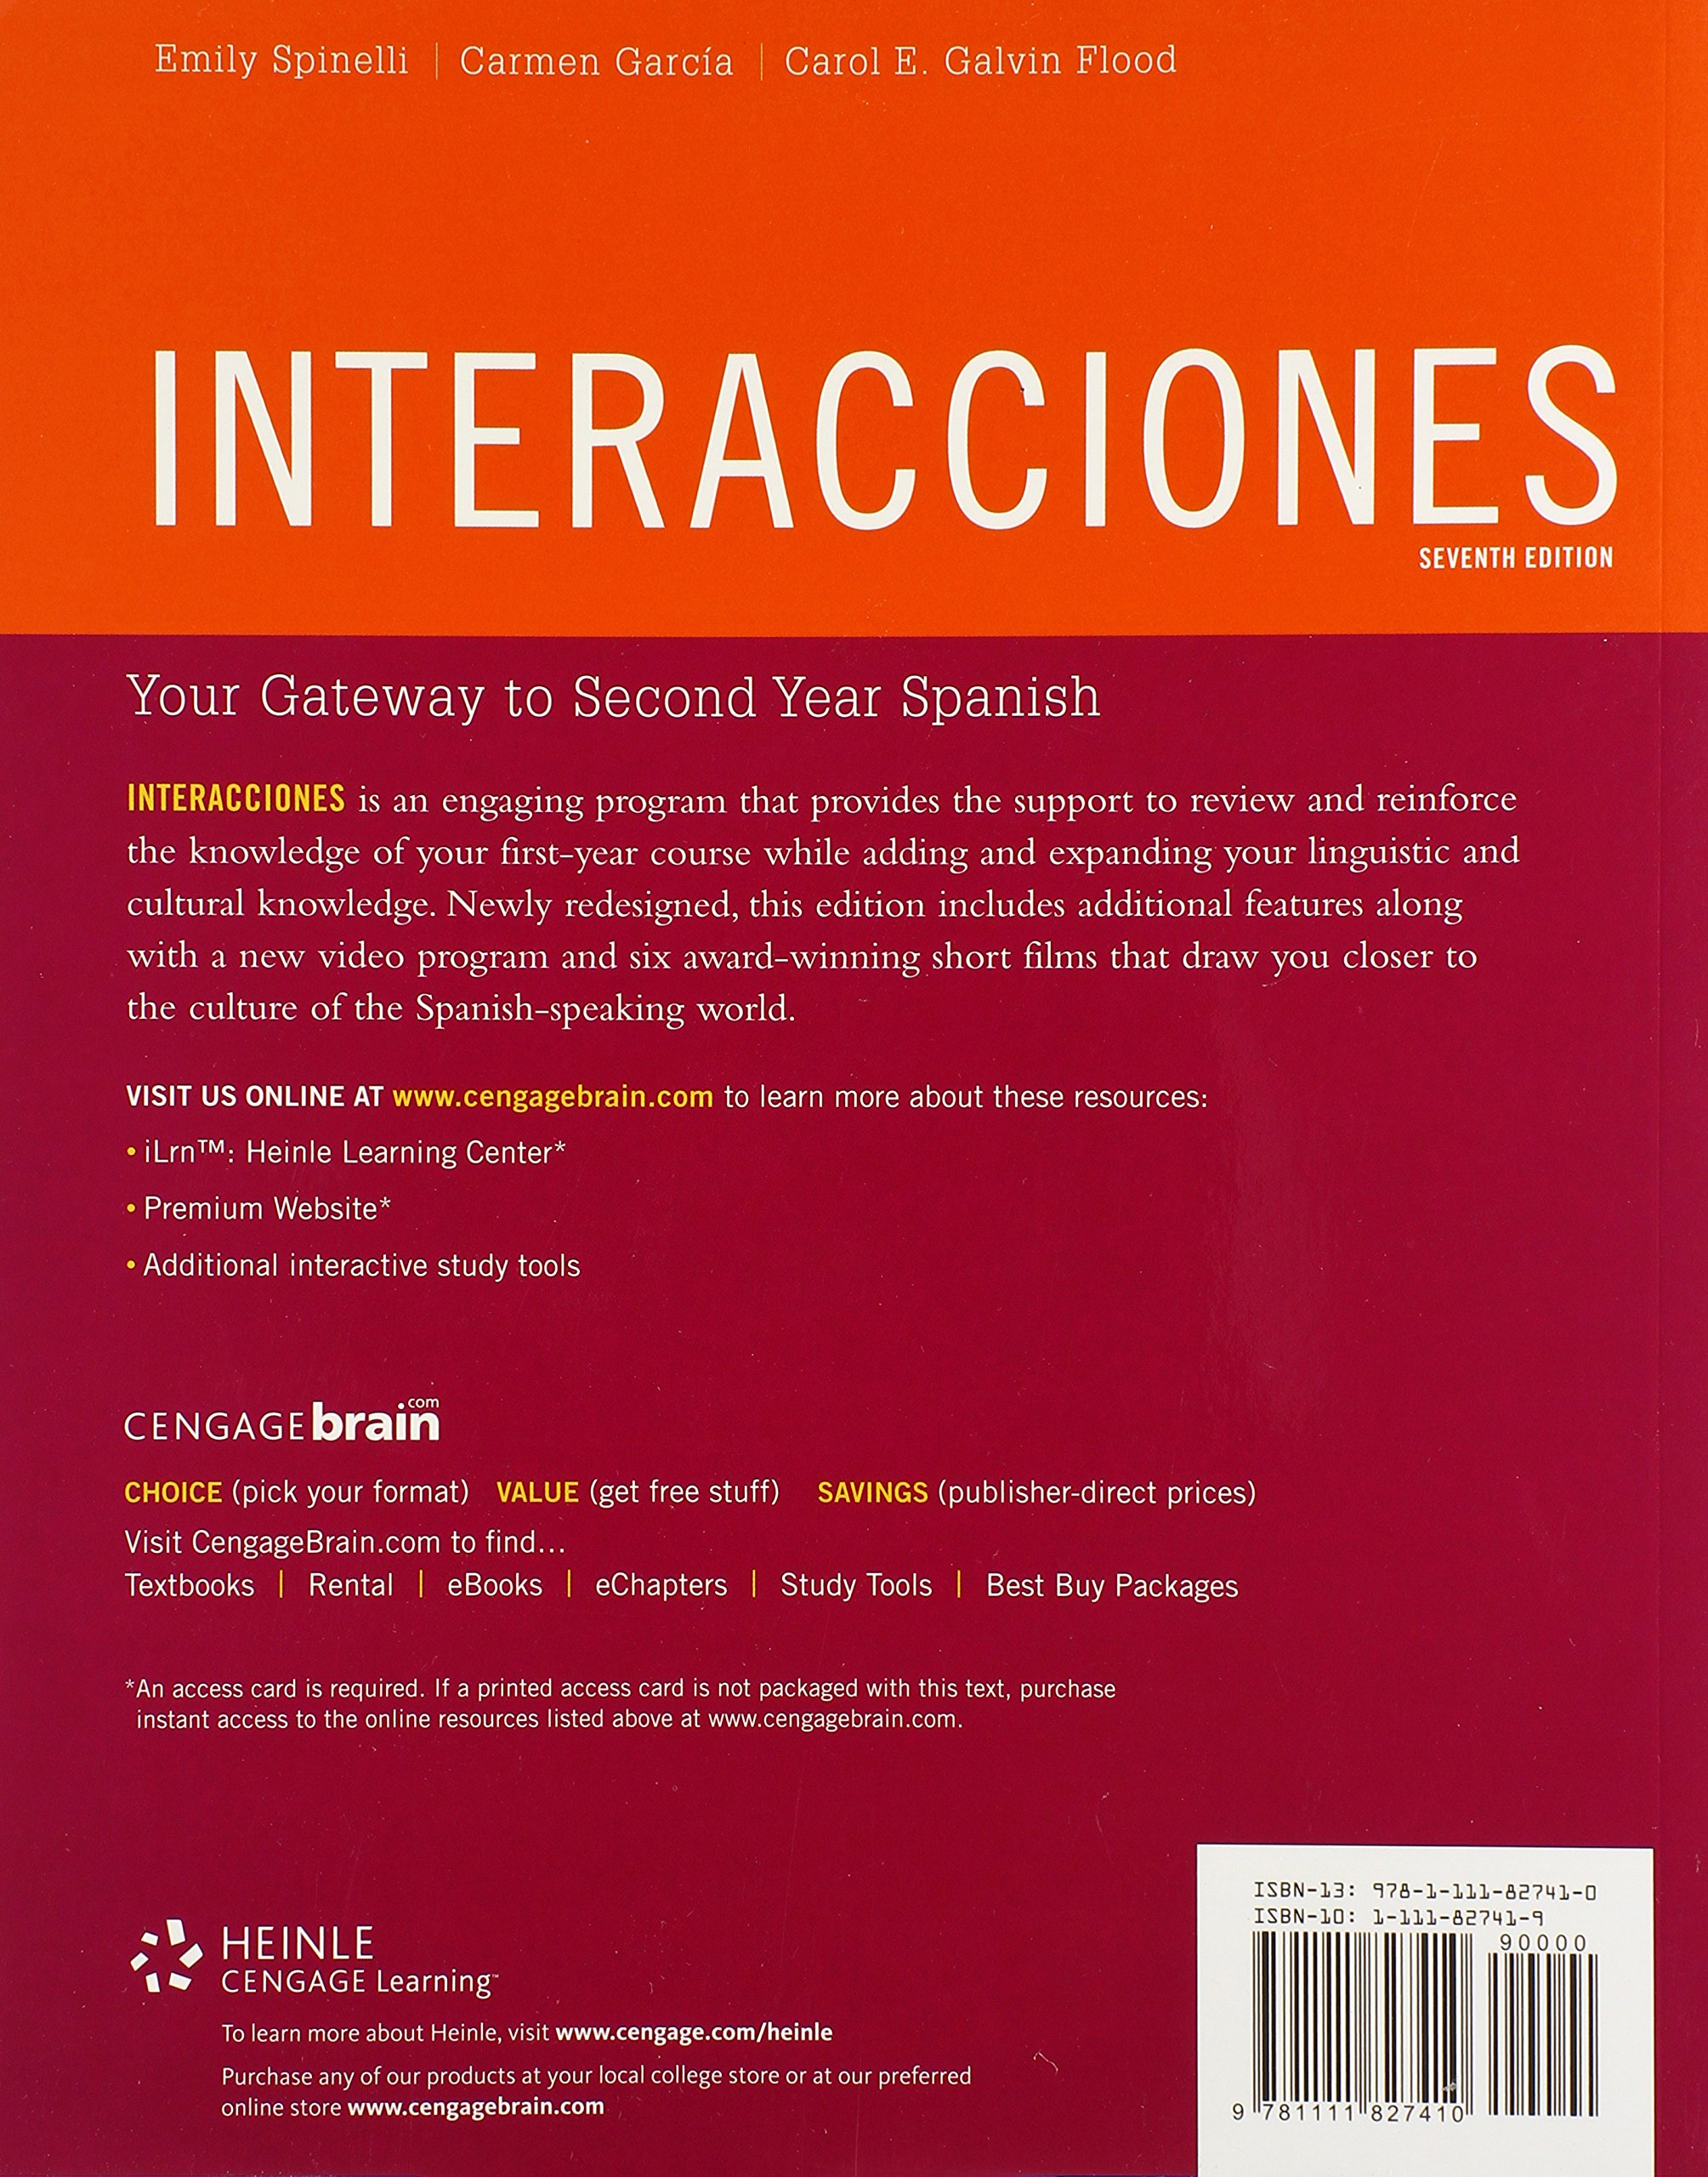 Interacciones (World Languages) by Cengage Learning